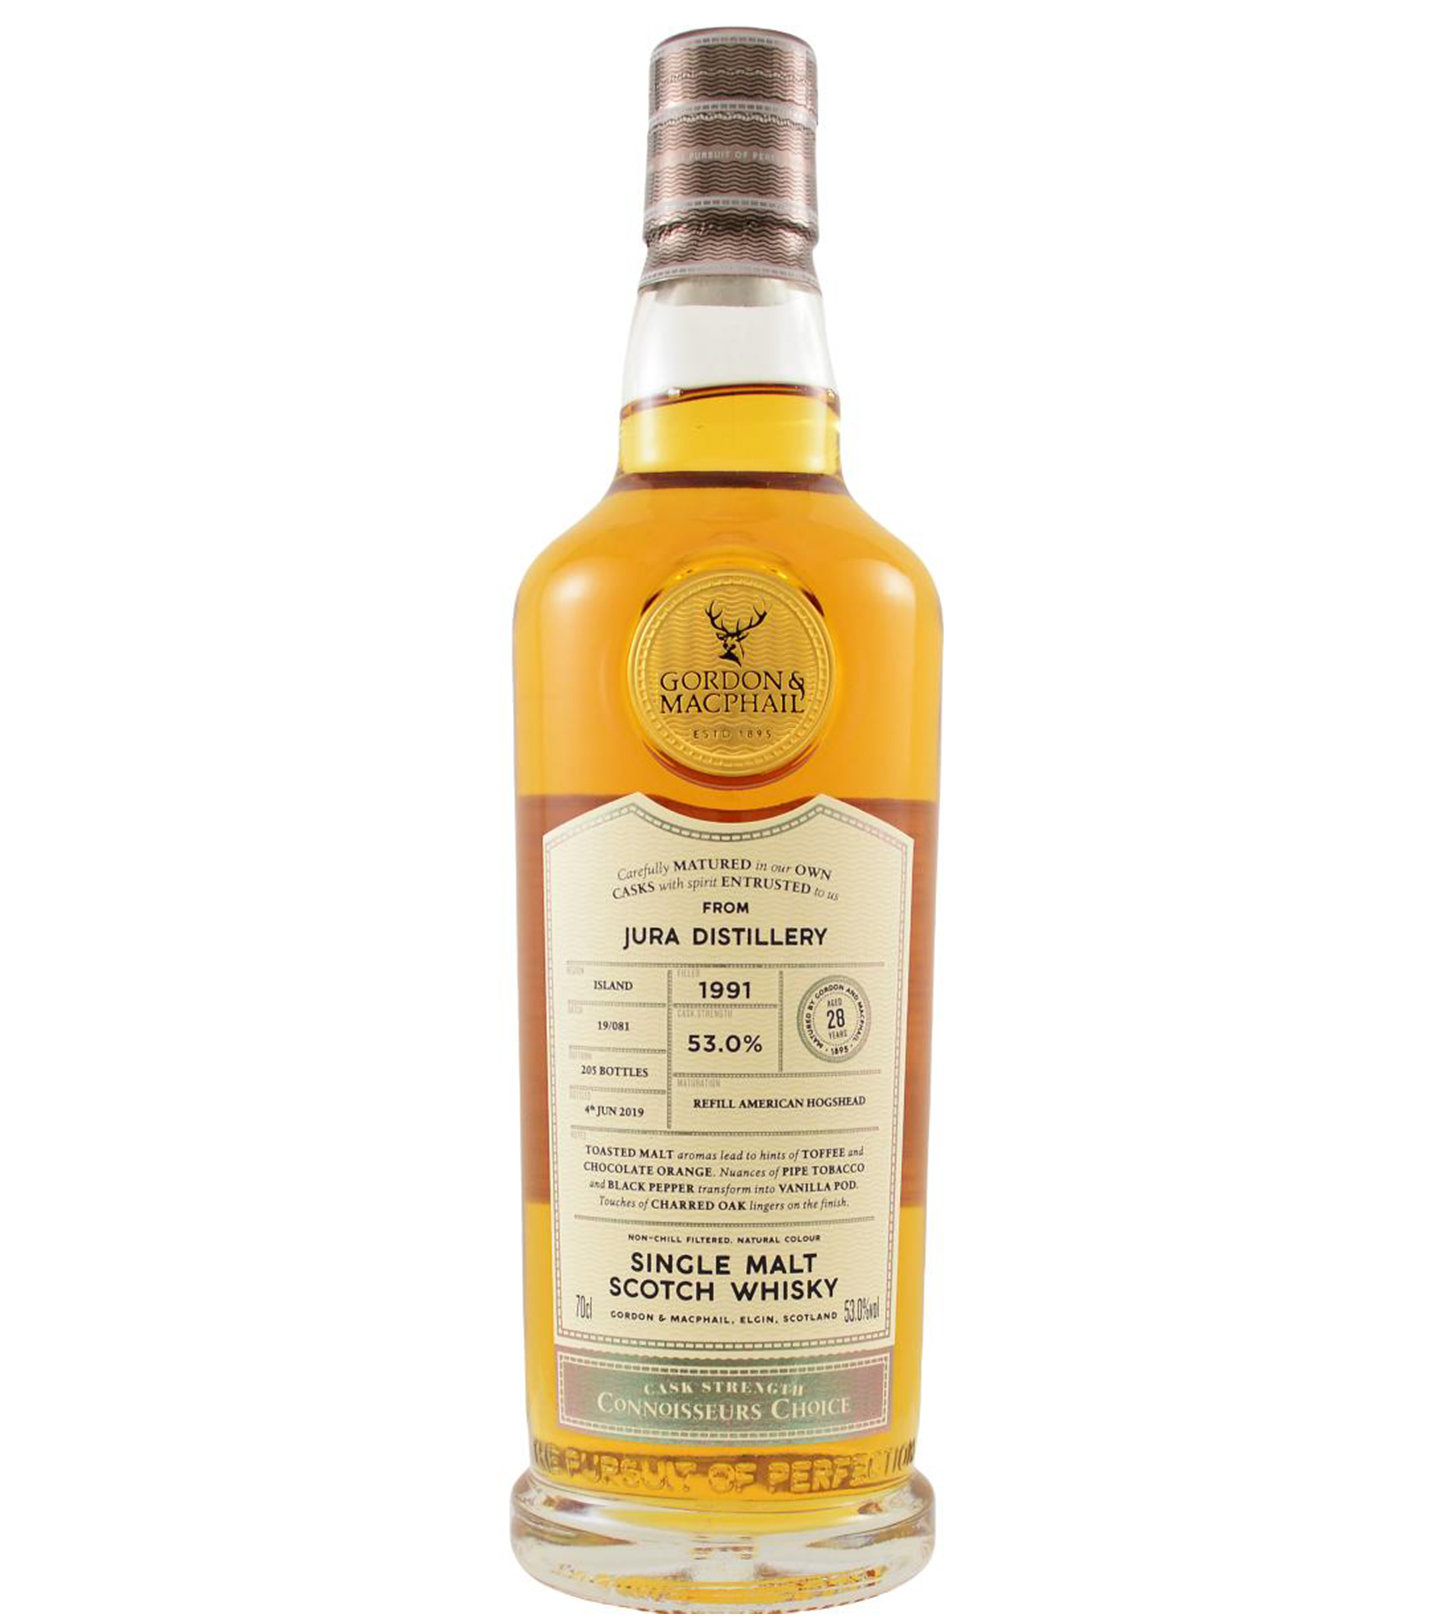 Isle of Jura 1991 28 years – Batch #19/081